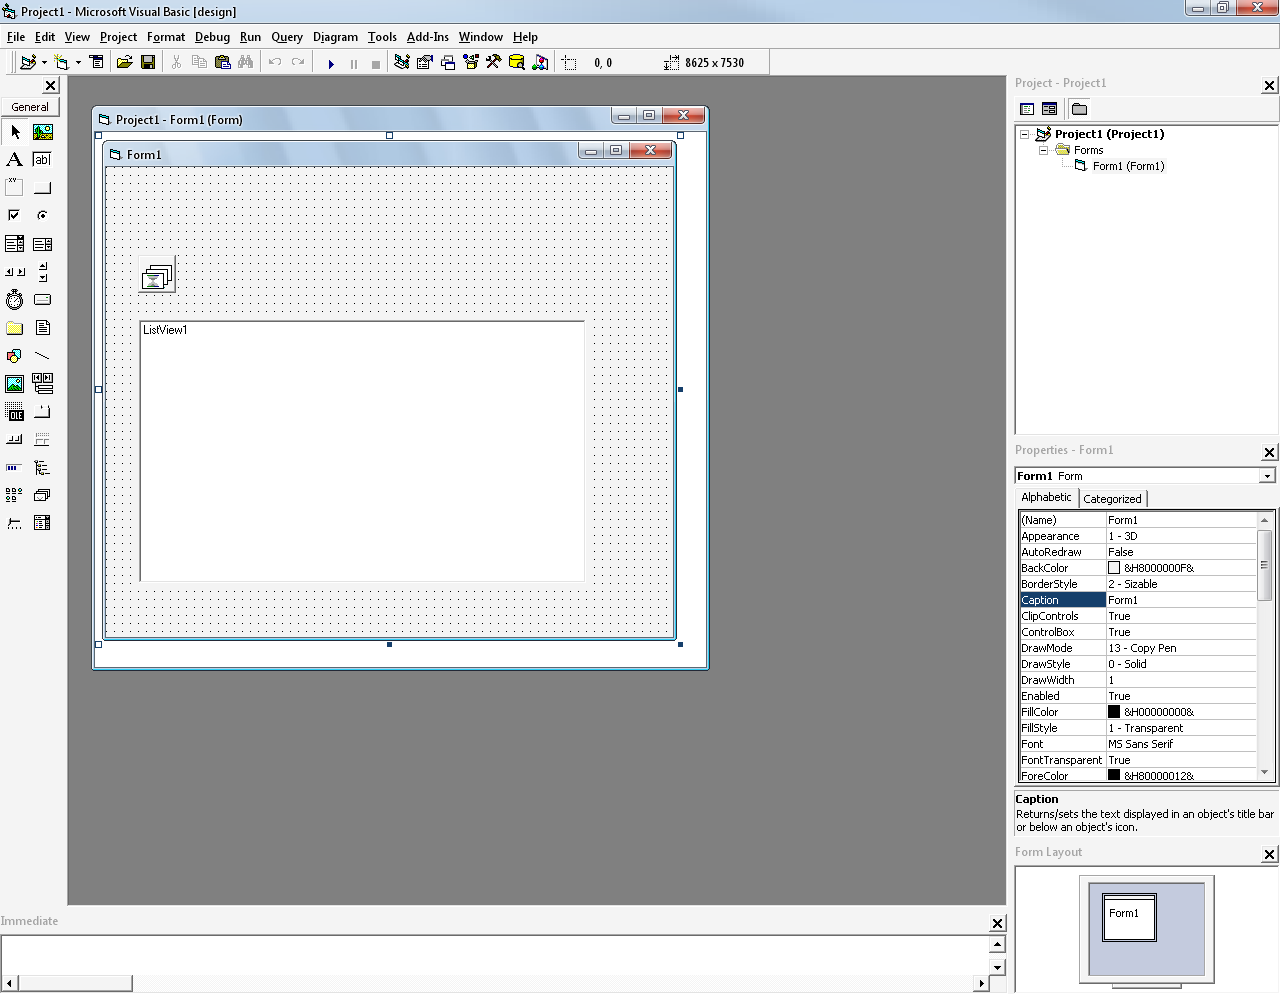 Create Icon in ListView Component Visual Basic 6 | Mabzicle